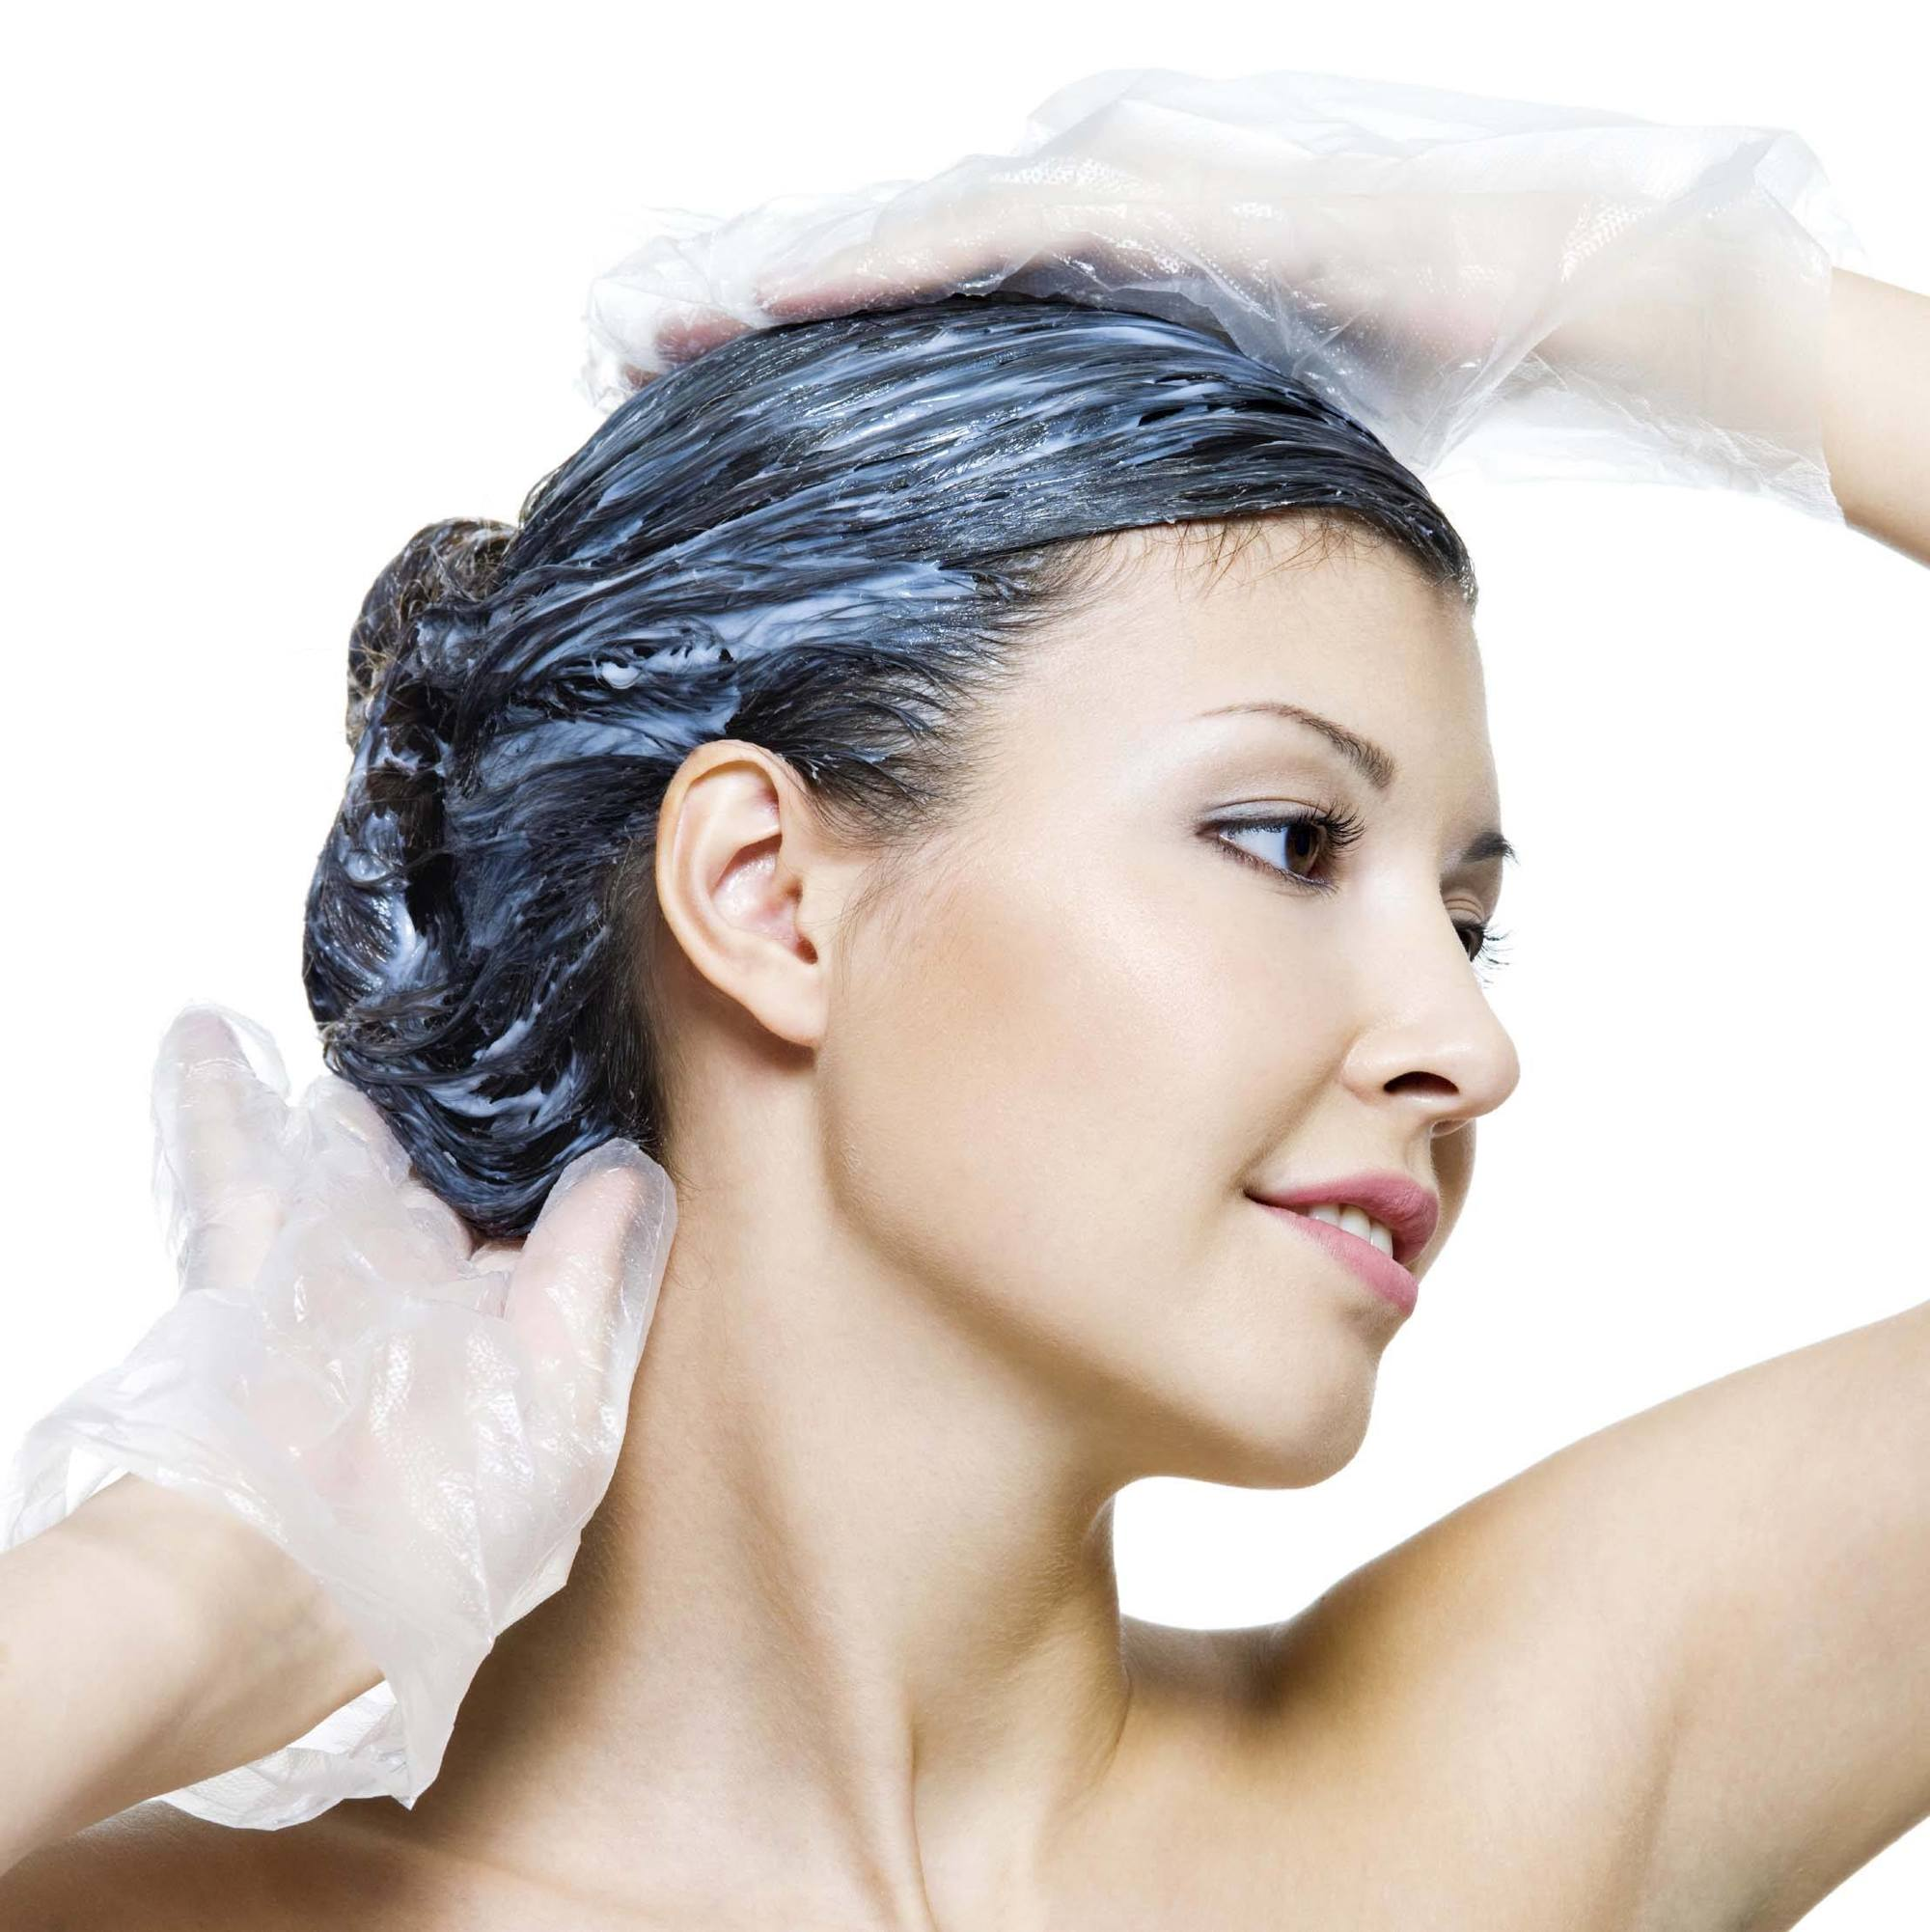 dyeing hair at home tips and advice